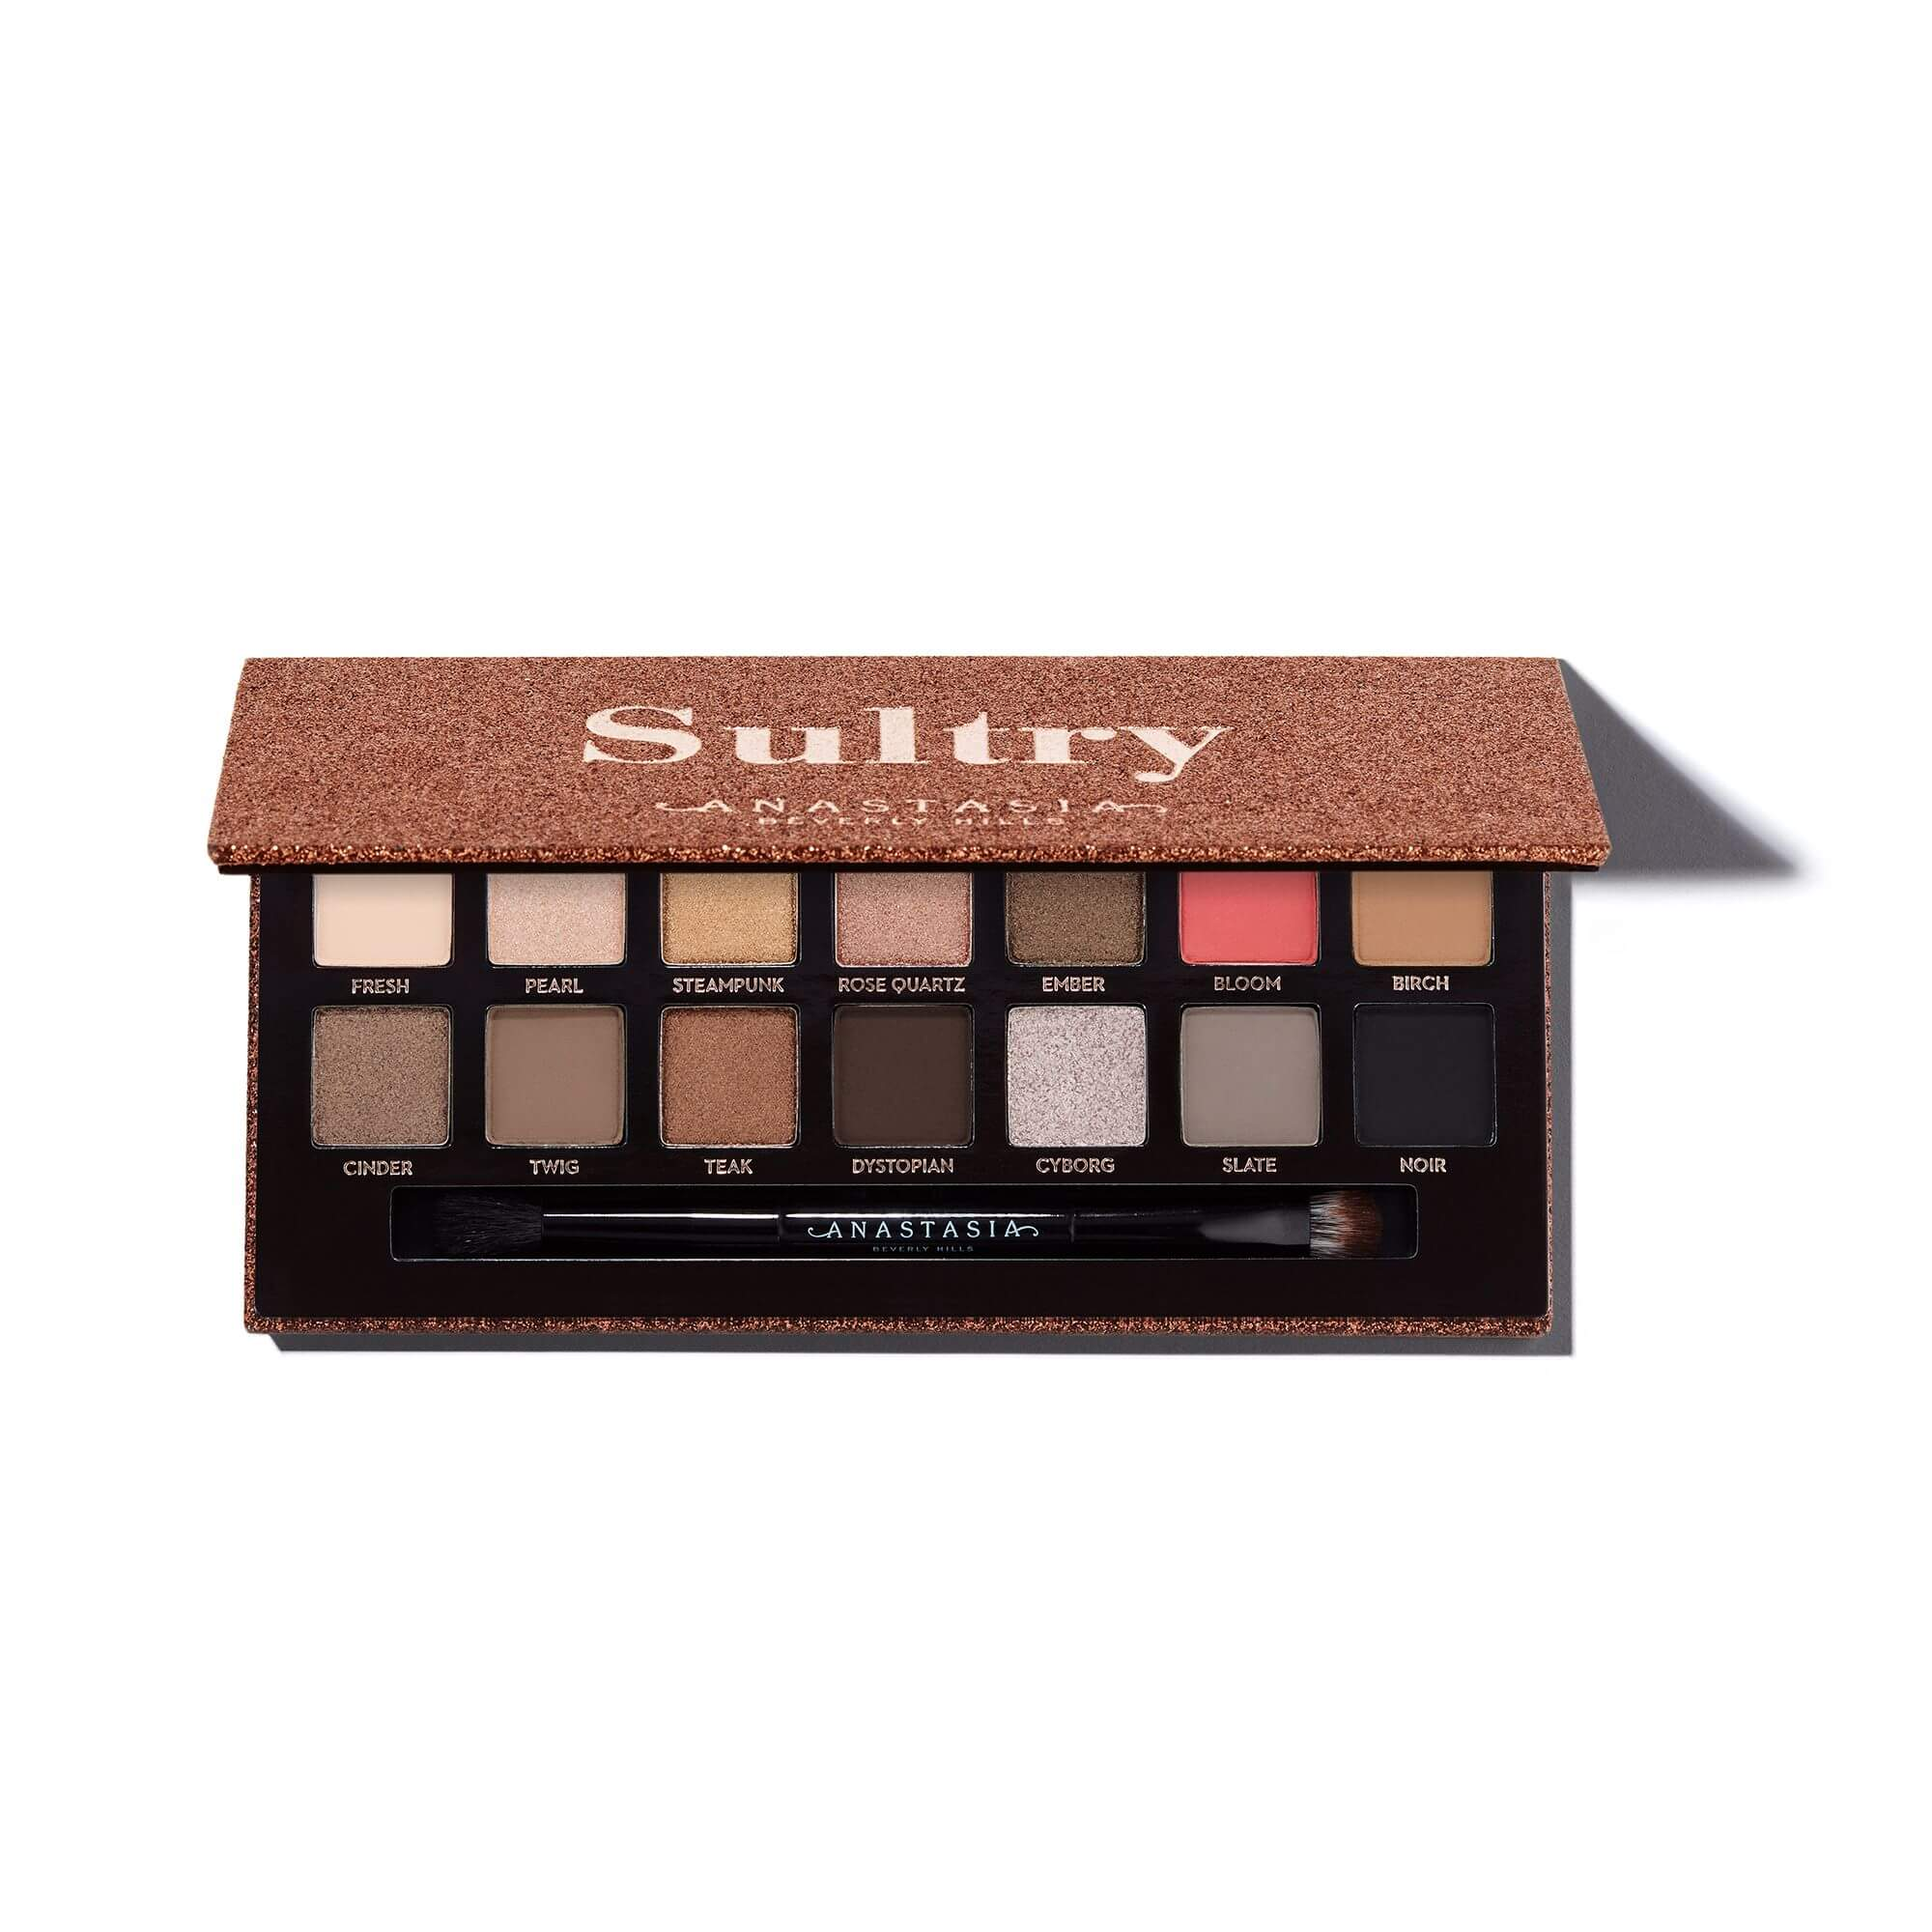 sultry eyeshadow palette smoky